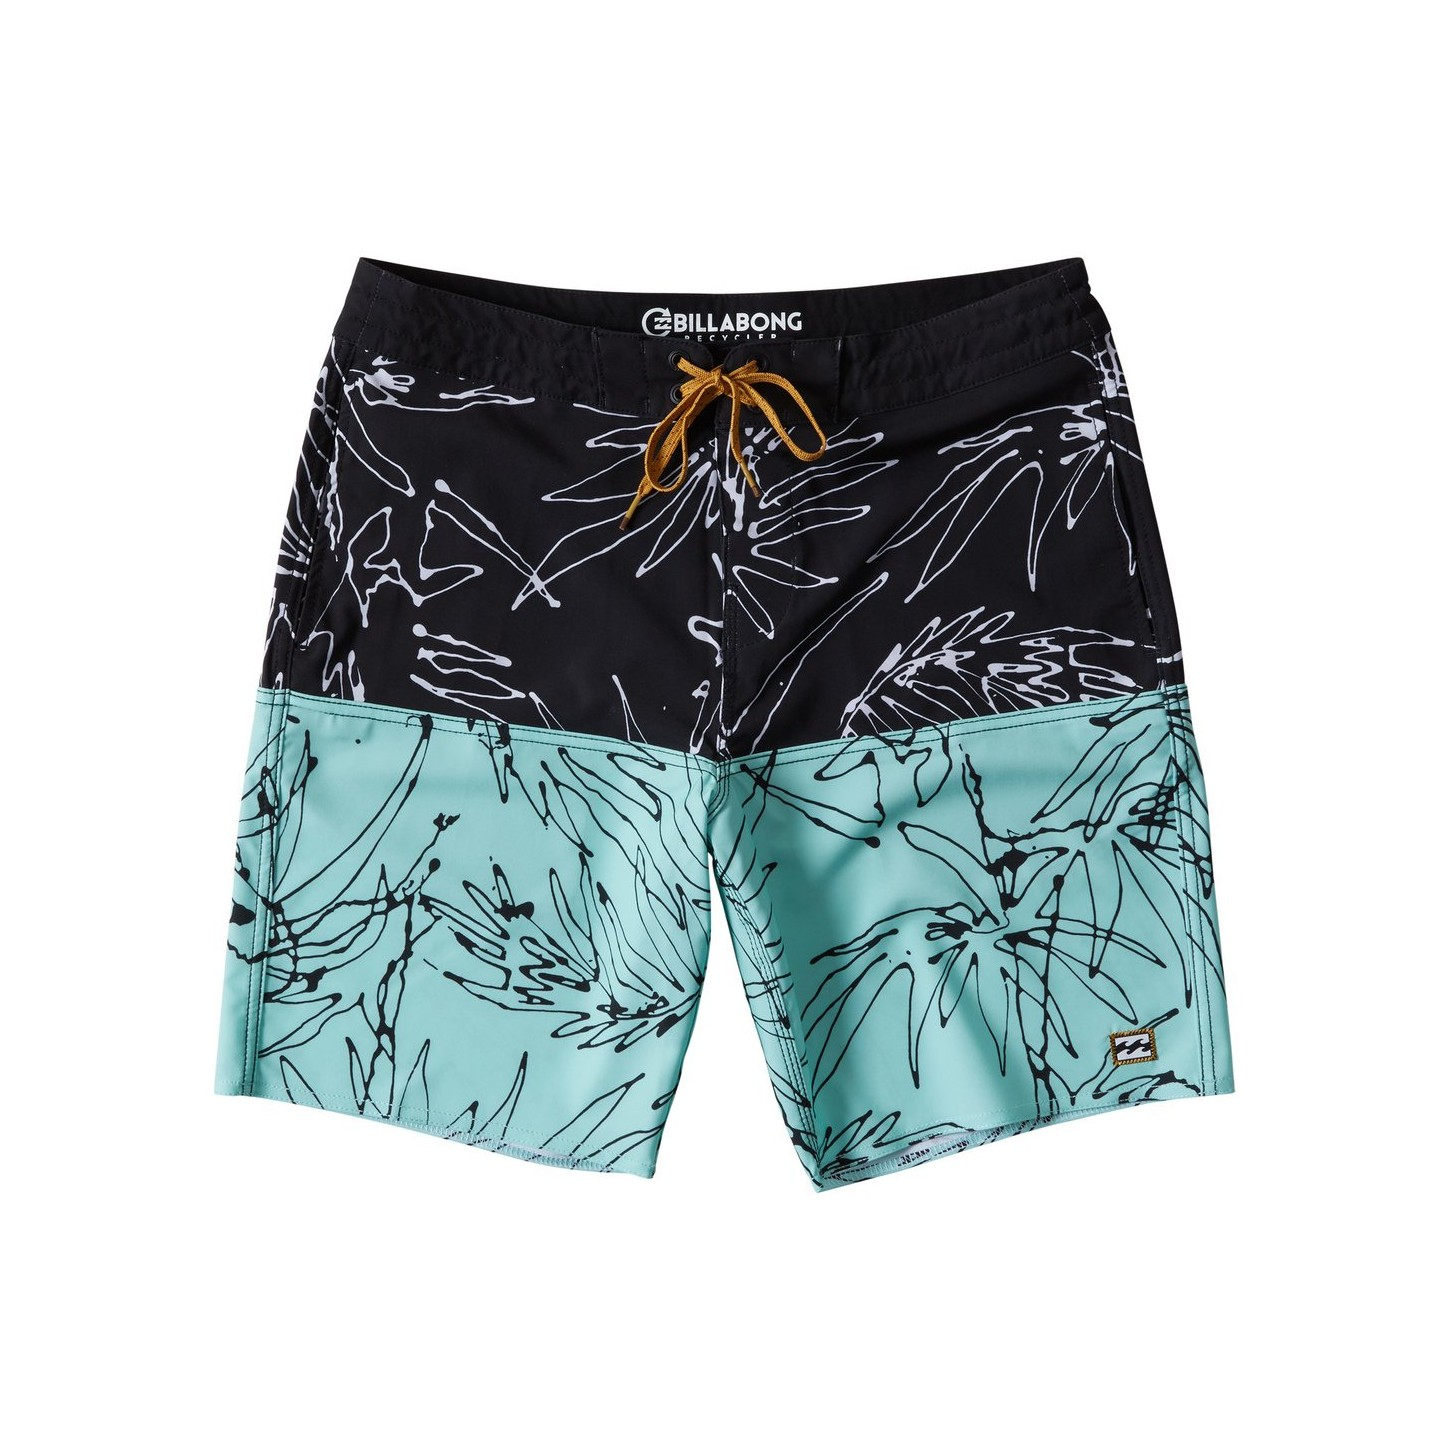 빌라봉 남성 보드숏 19Billabong FIFTY50 LT MNT M141TBFI